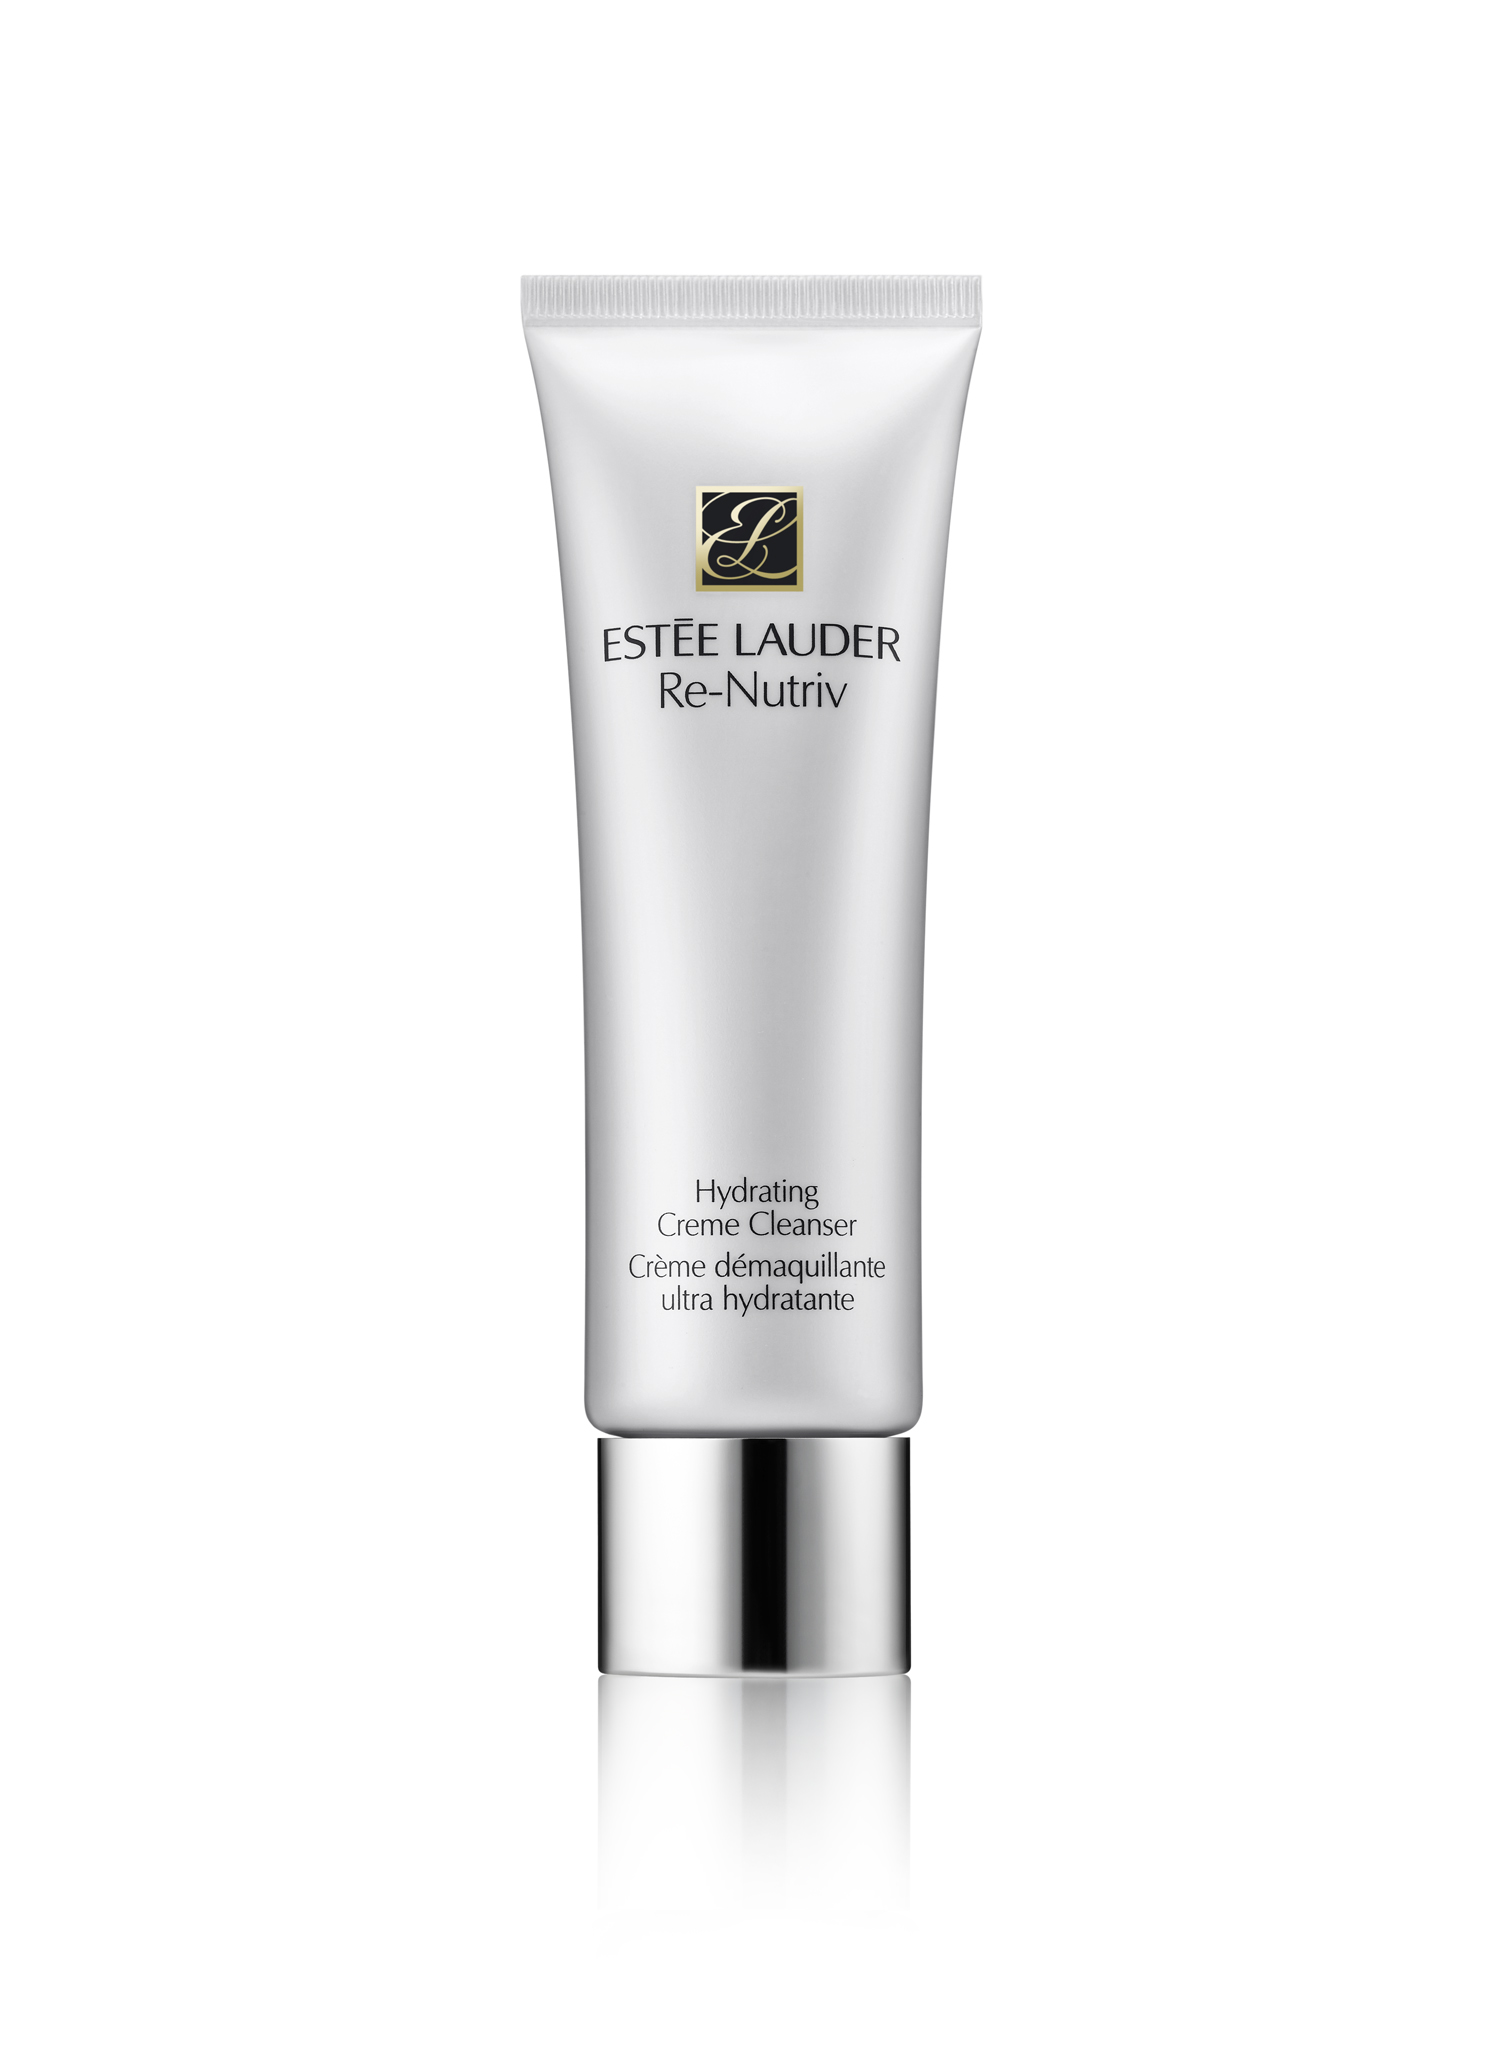 Estee Lauder Re-Nutriv Intensive Hydrating Creme Cleanser 125 ml